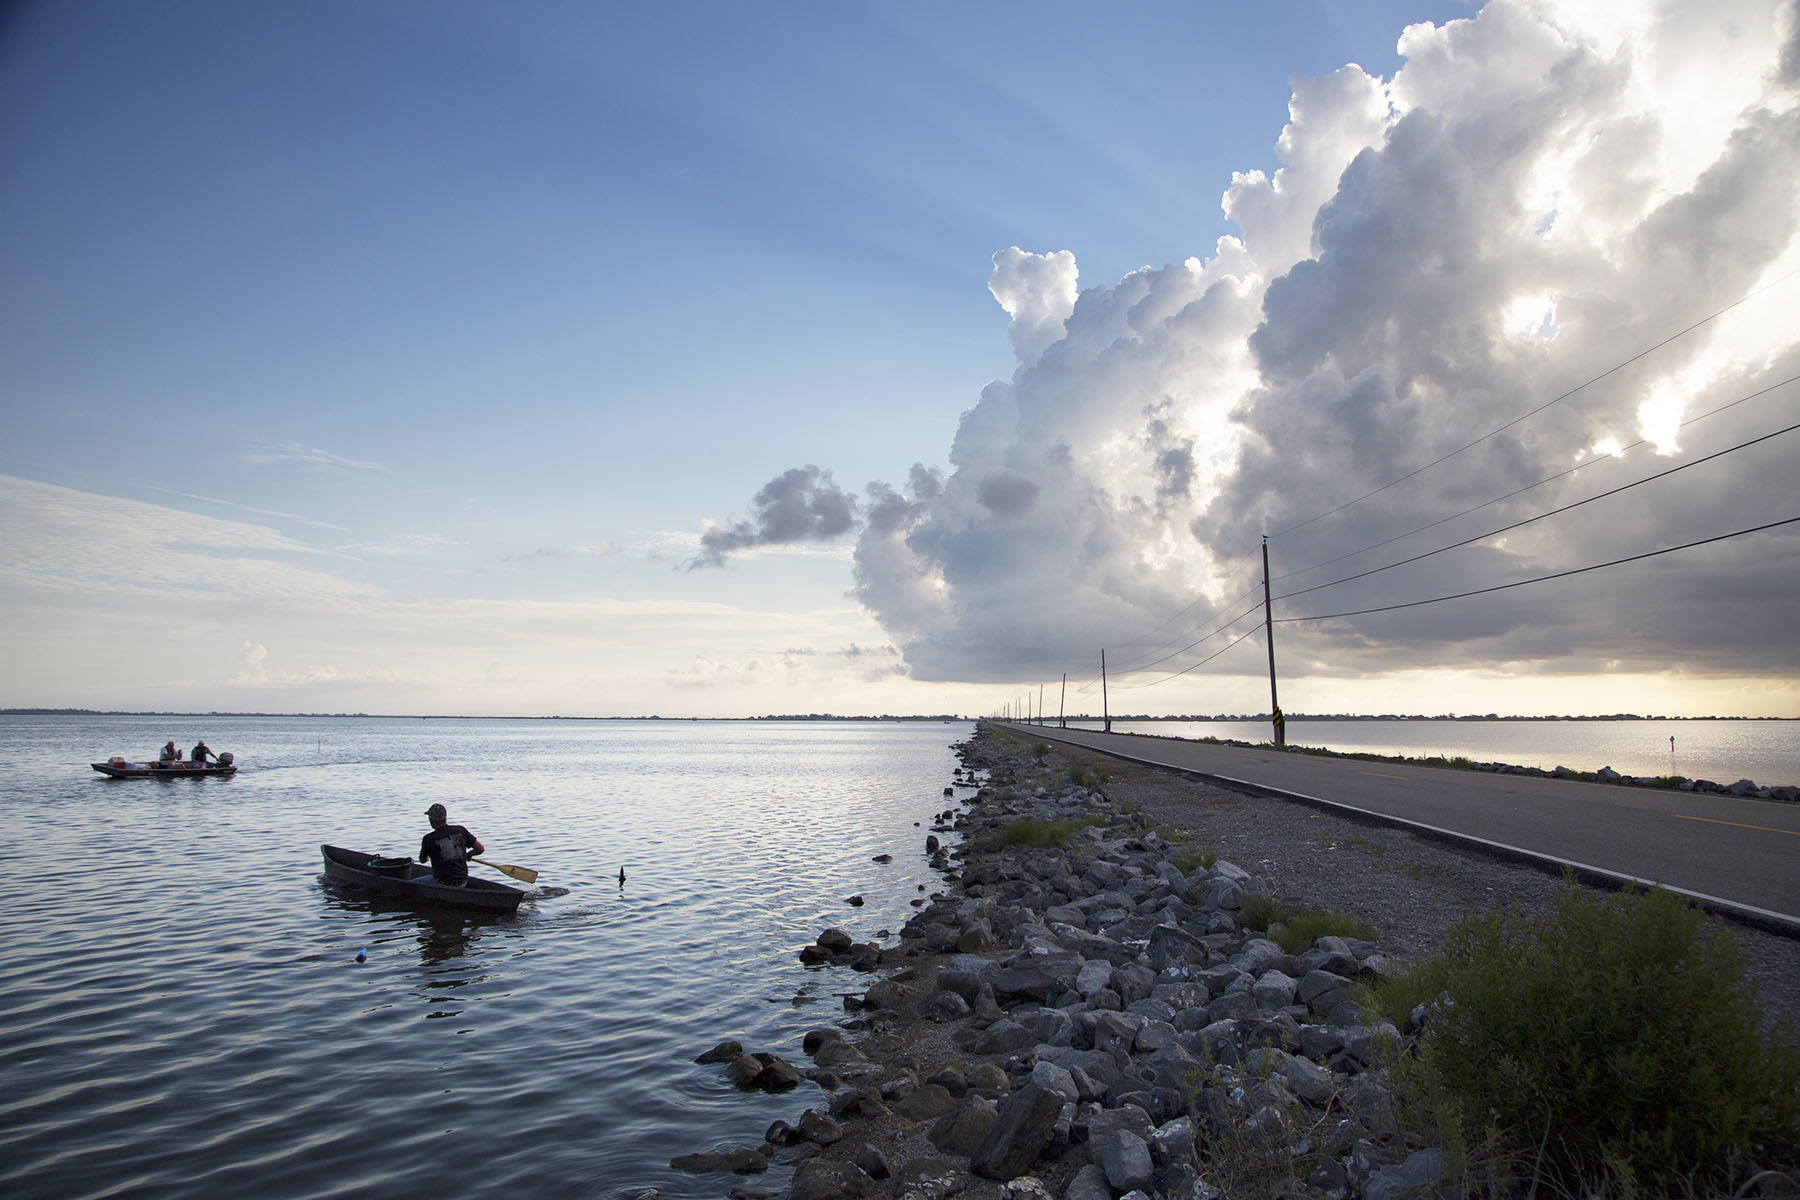 Craig Dufrene of Thibodaux paddles his boat off of Island Road where he spent the morning trapping crabs in July, 2014.